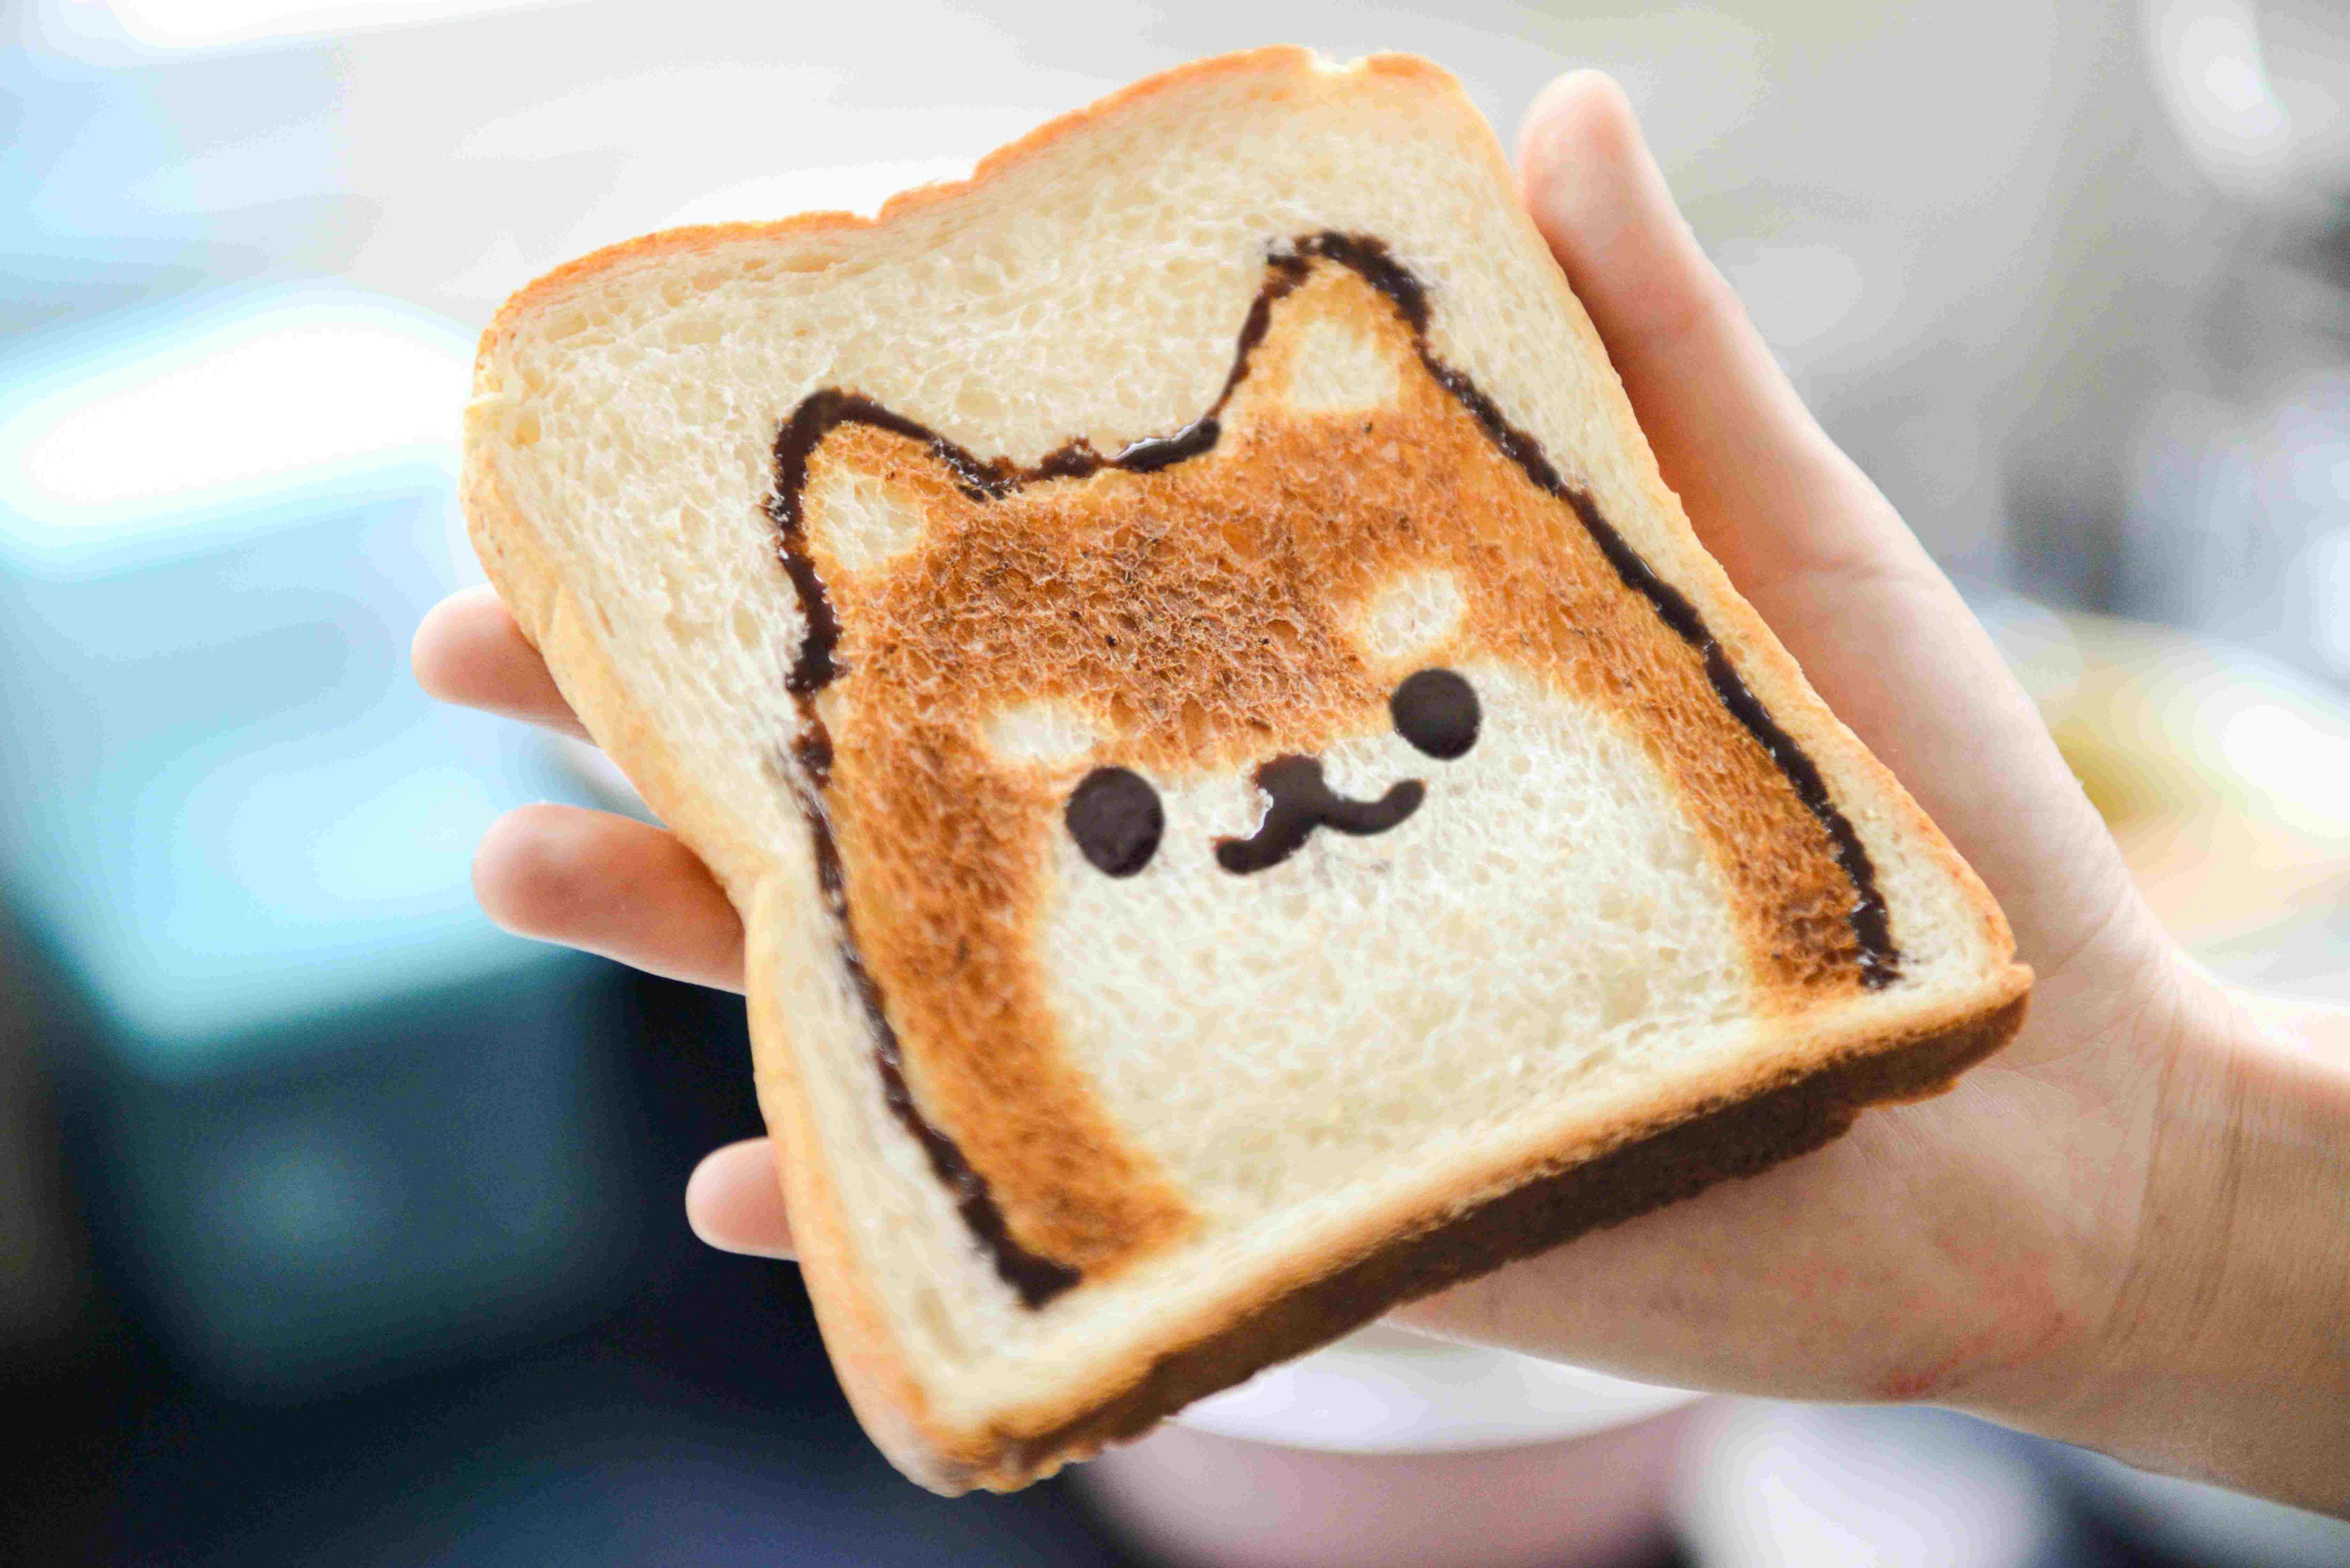 A child holding a bread with a cat face drawing on it